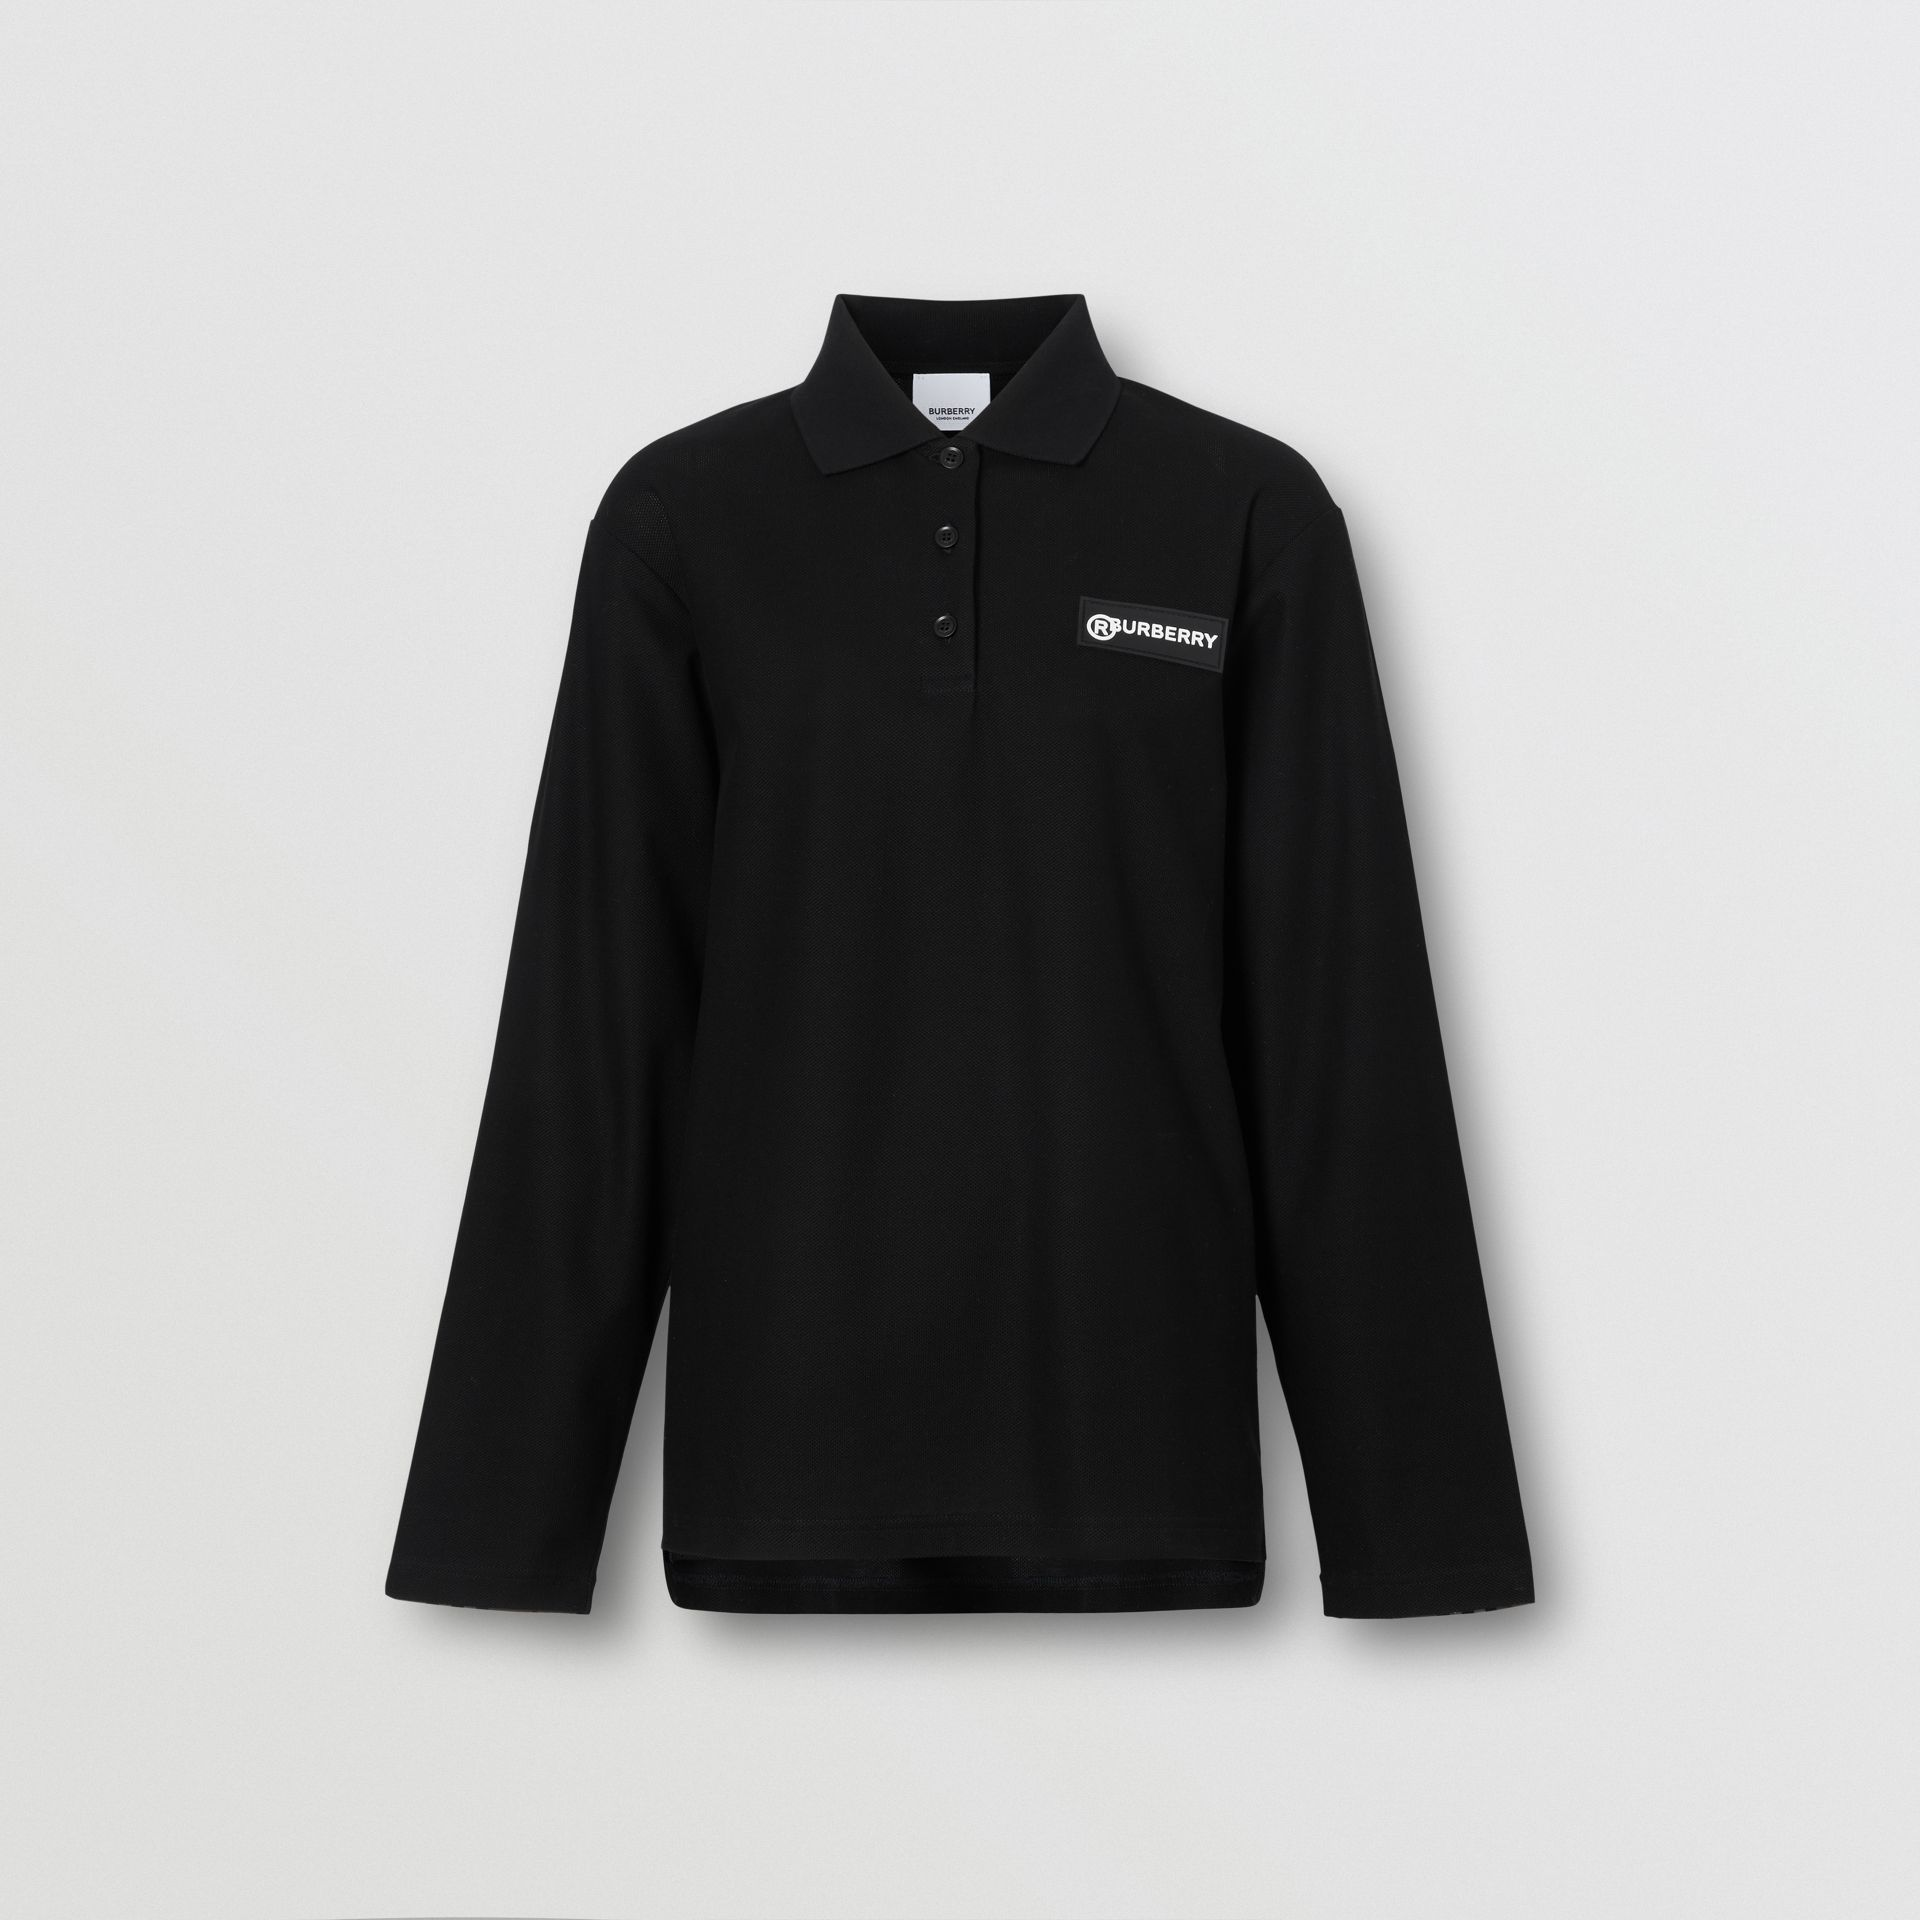 Long-sleeve Vintage Check Panel Oversized Polo Shirt in Black - Women | Burberry United Kingdom - gallery image 3